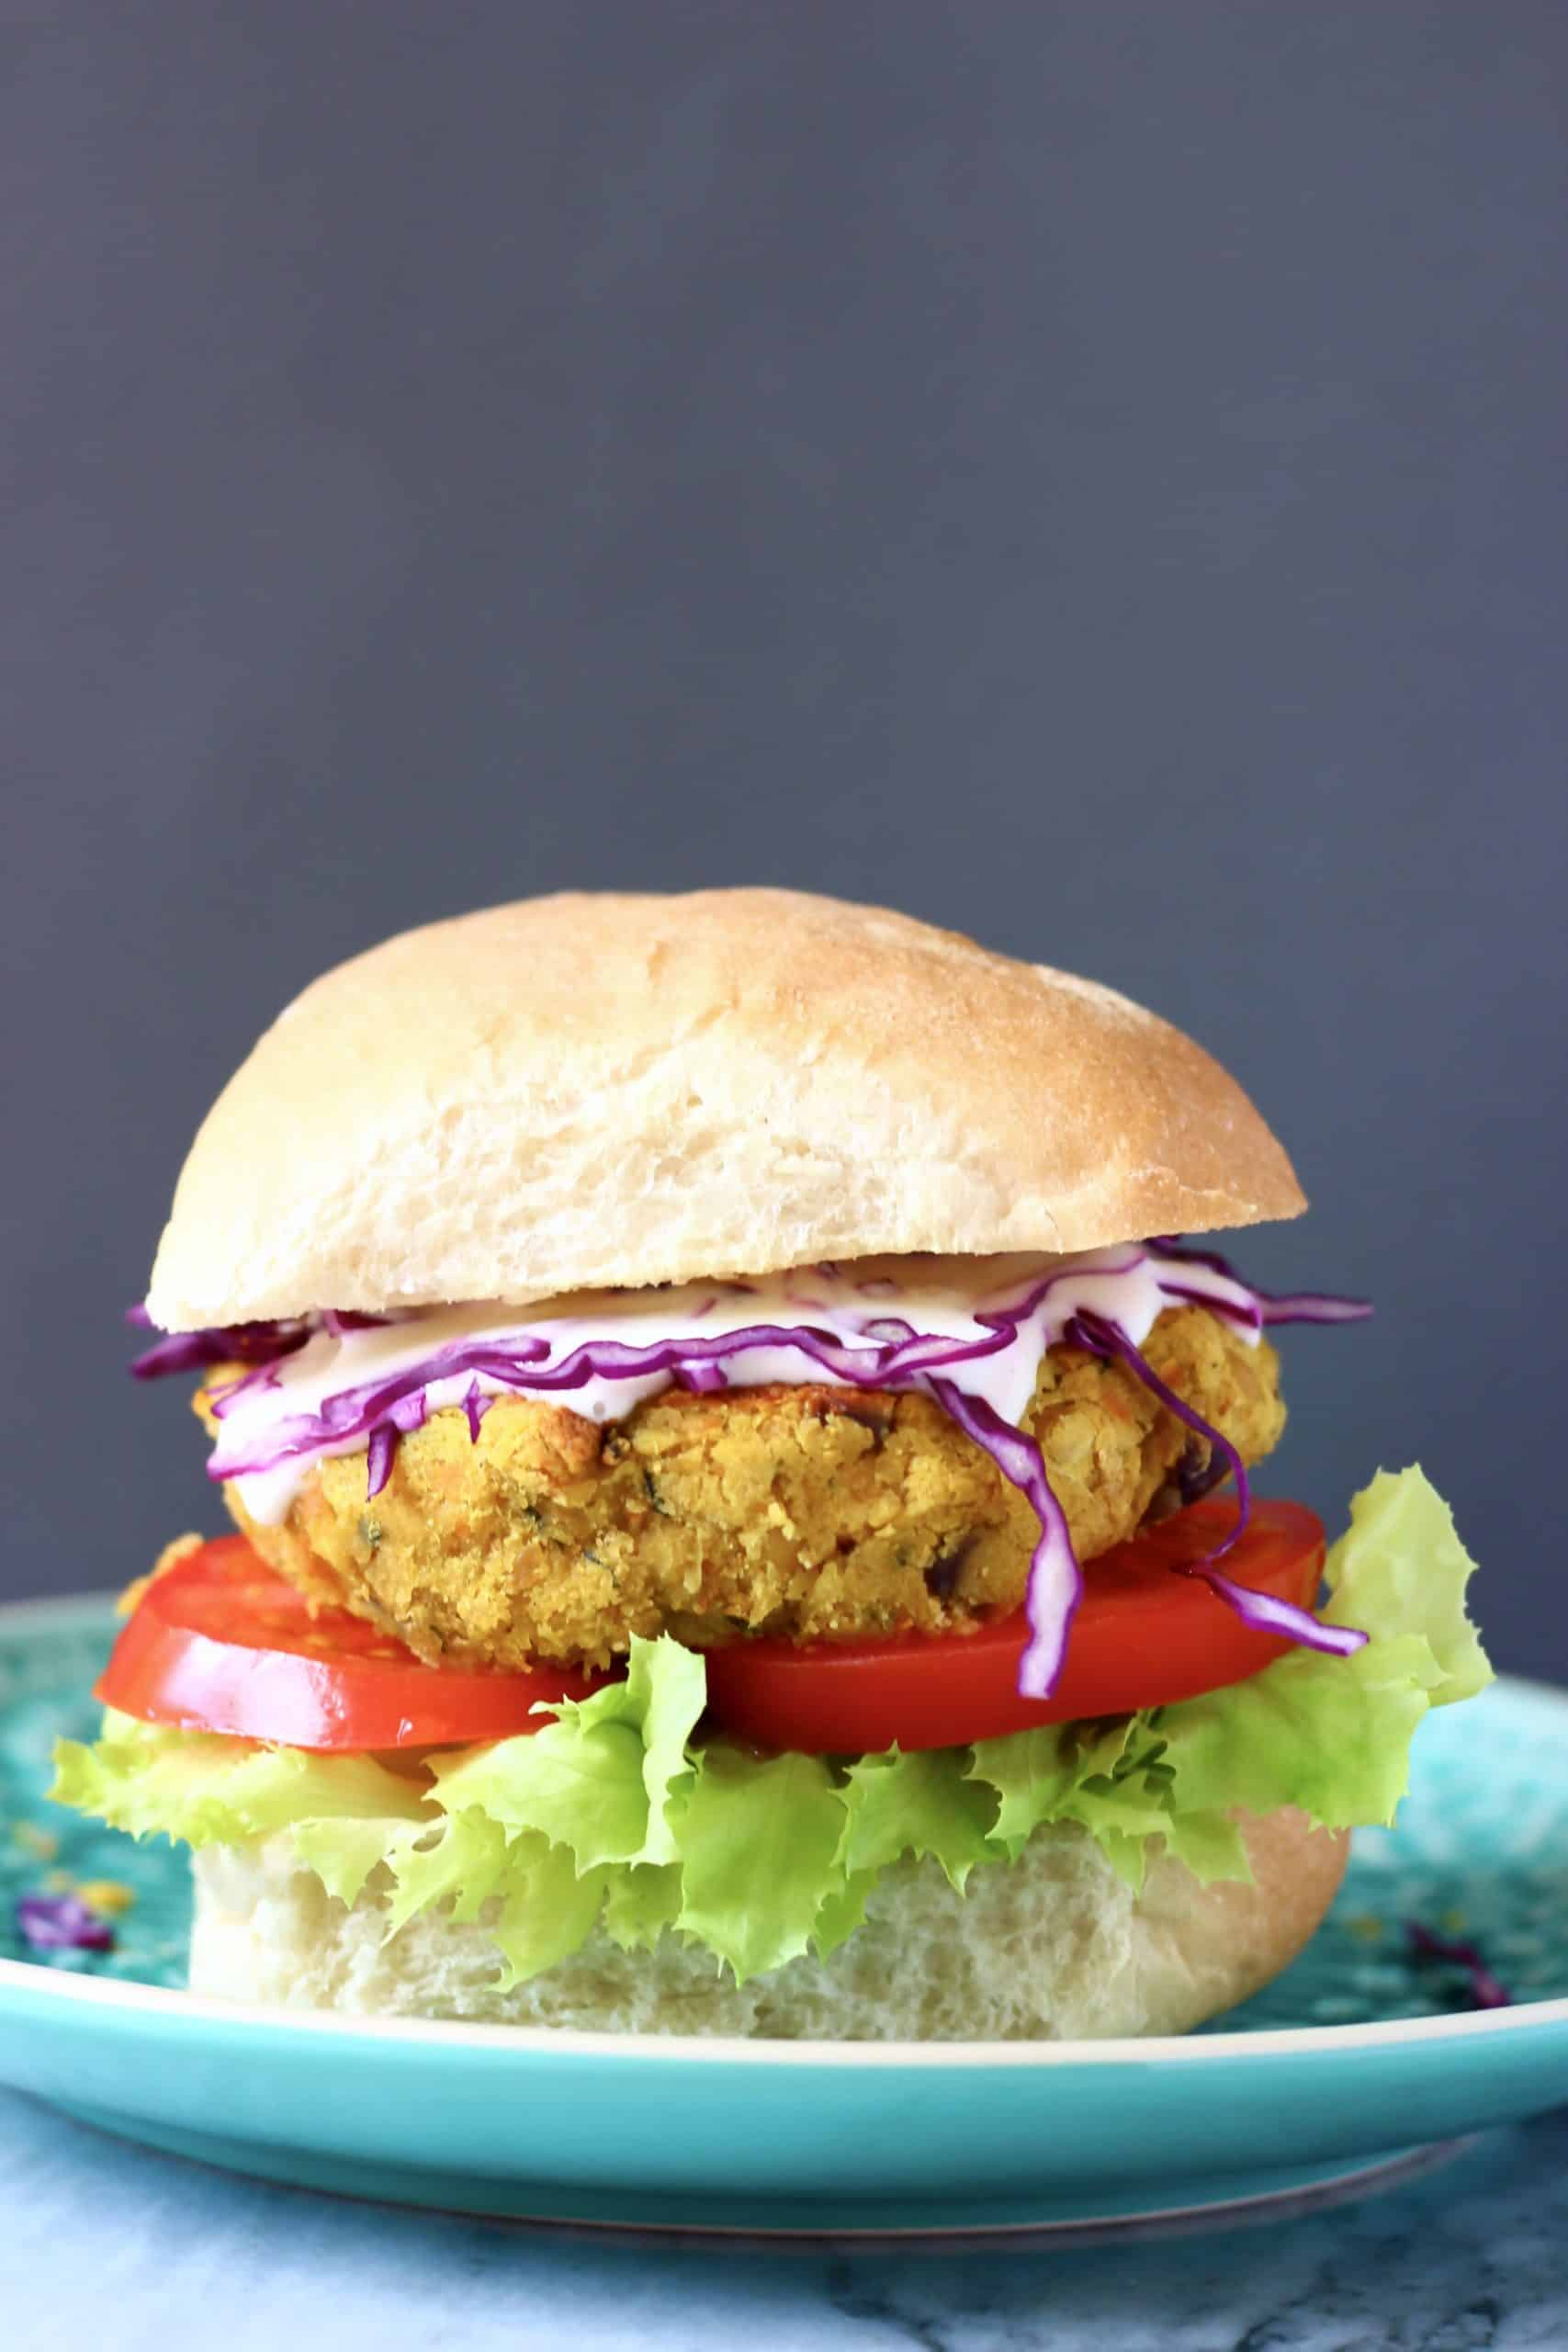 Curried chickpea burger with salad on a blue plate